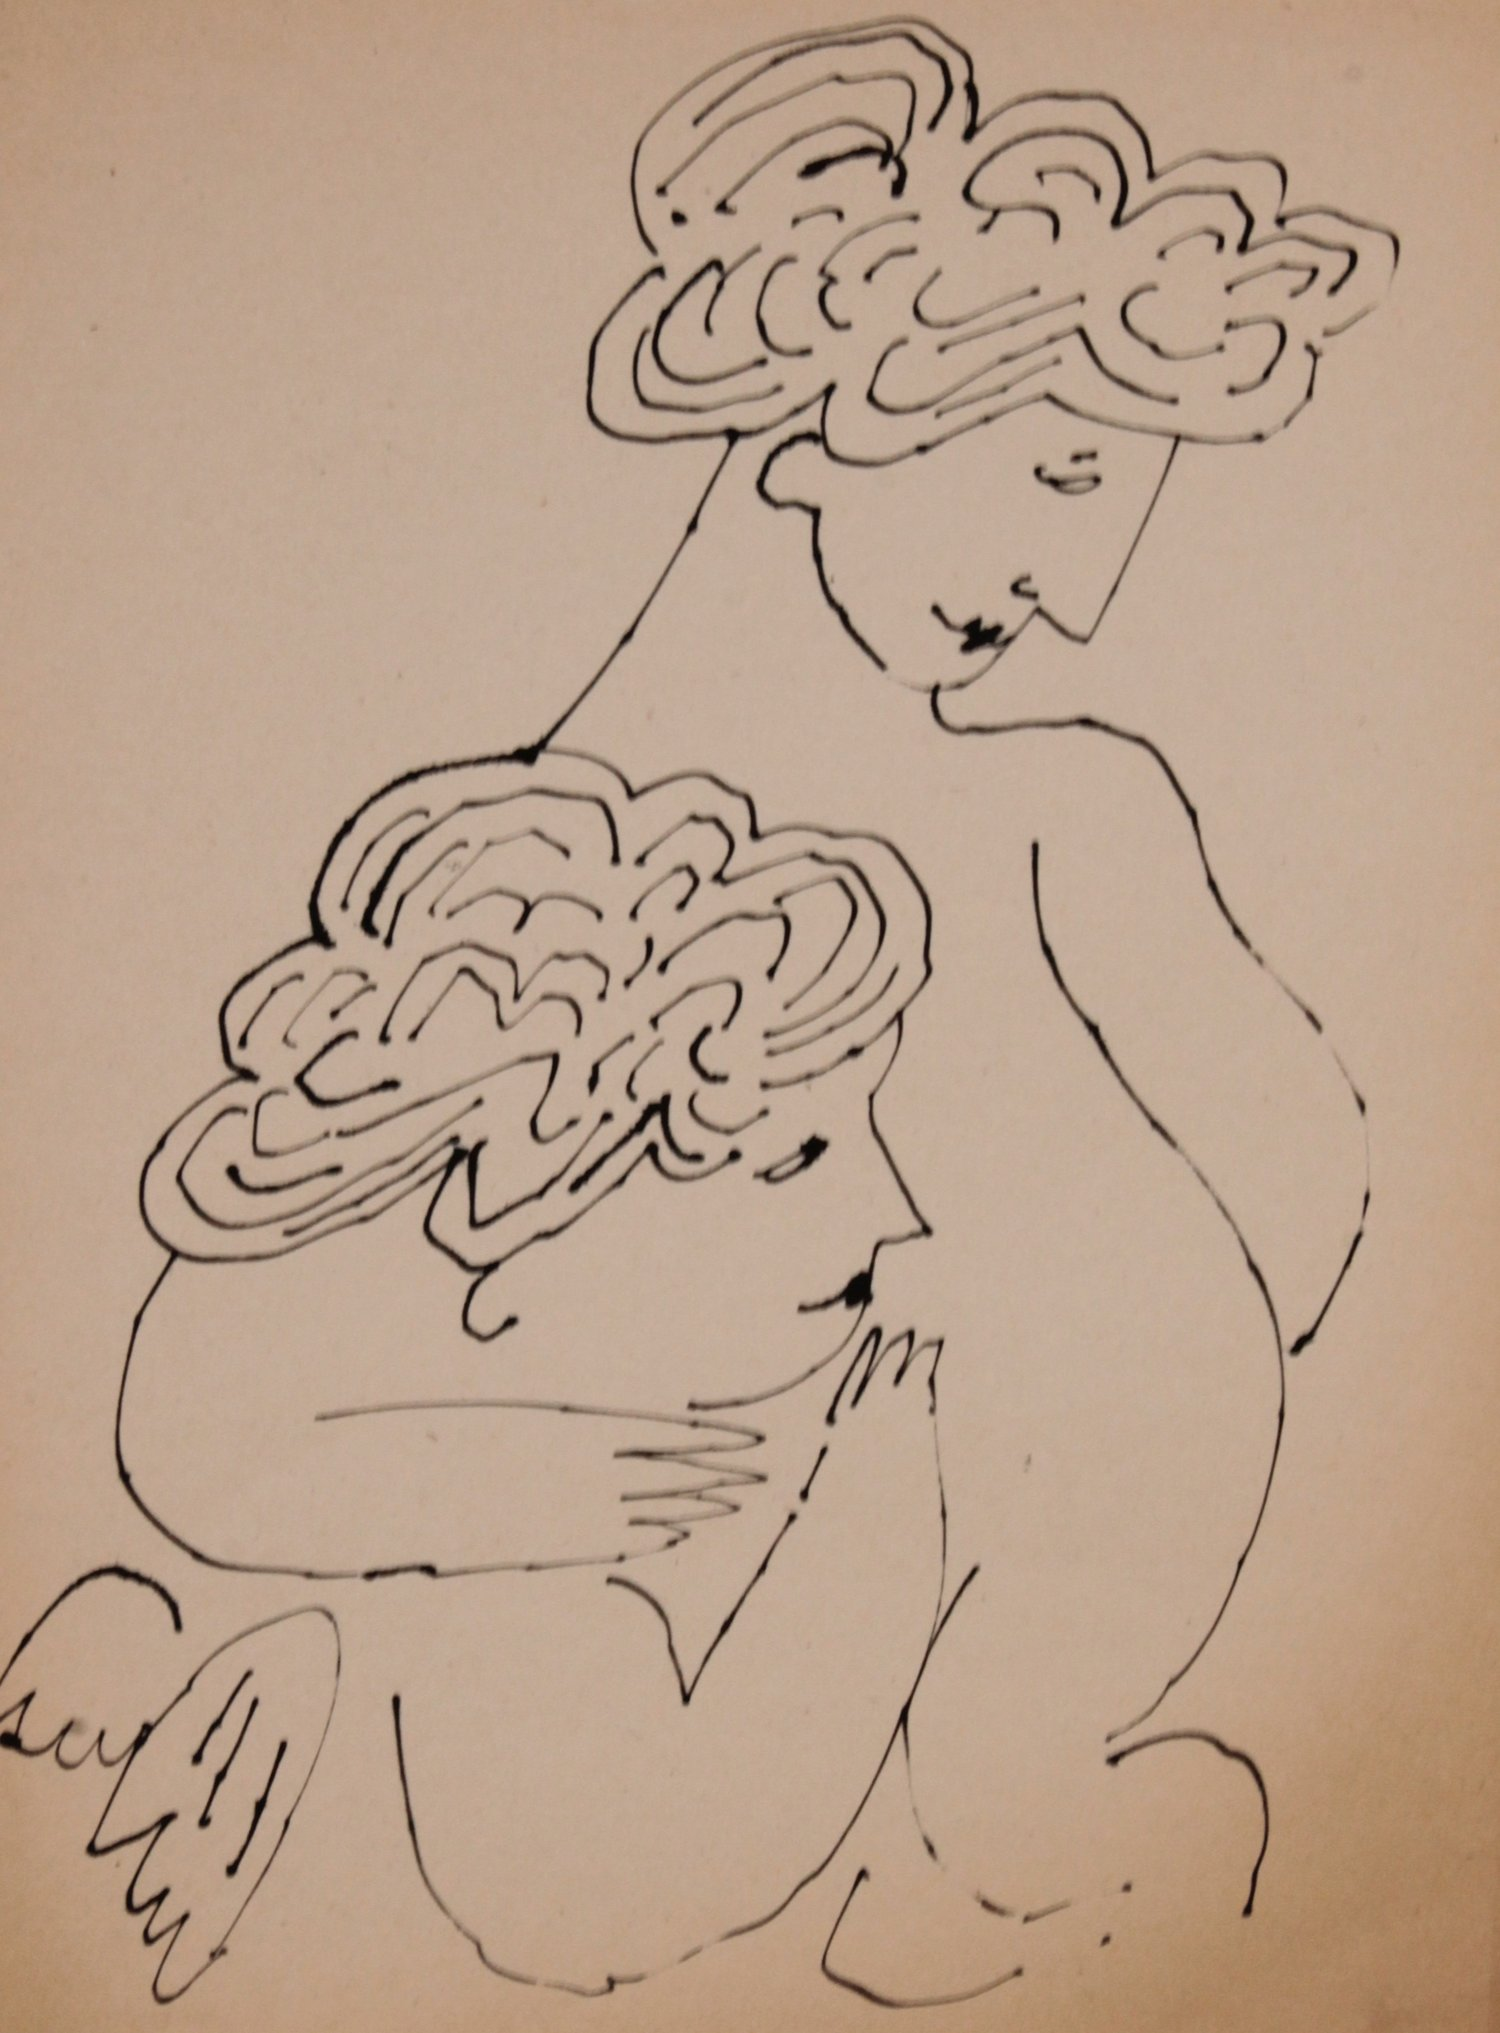 Andy Warhol drawing of two cherubs embracing